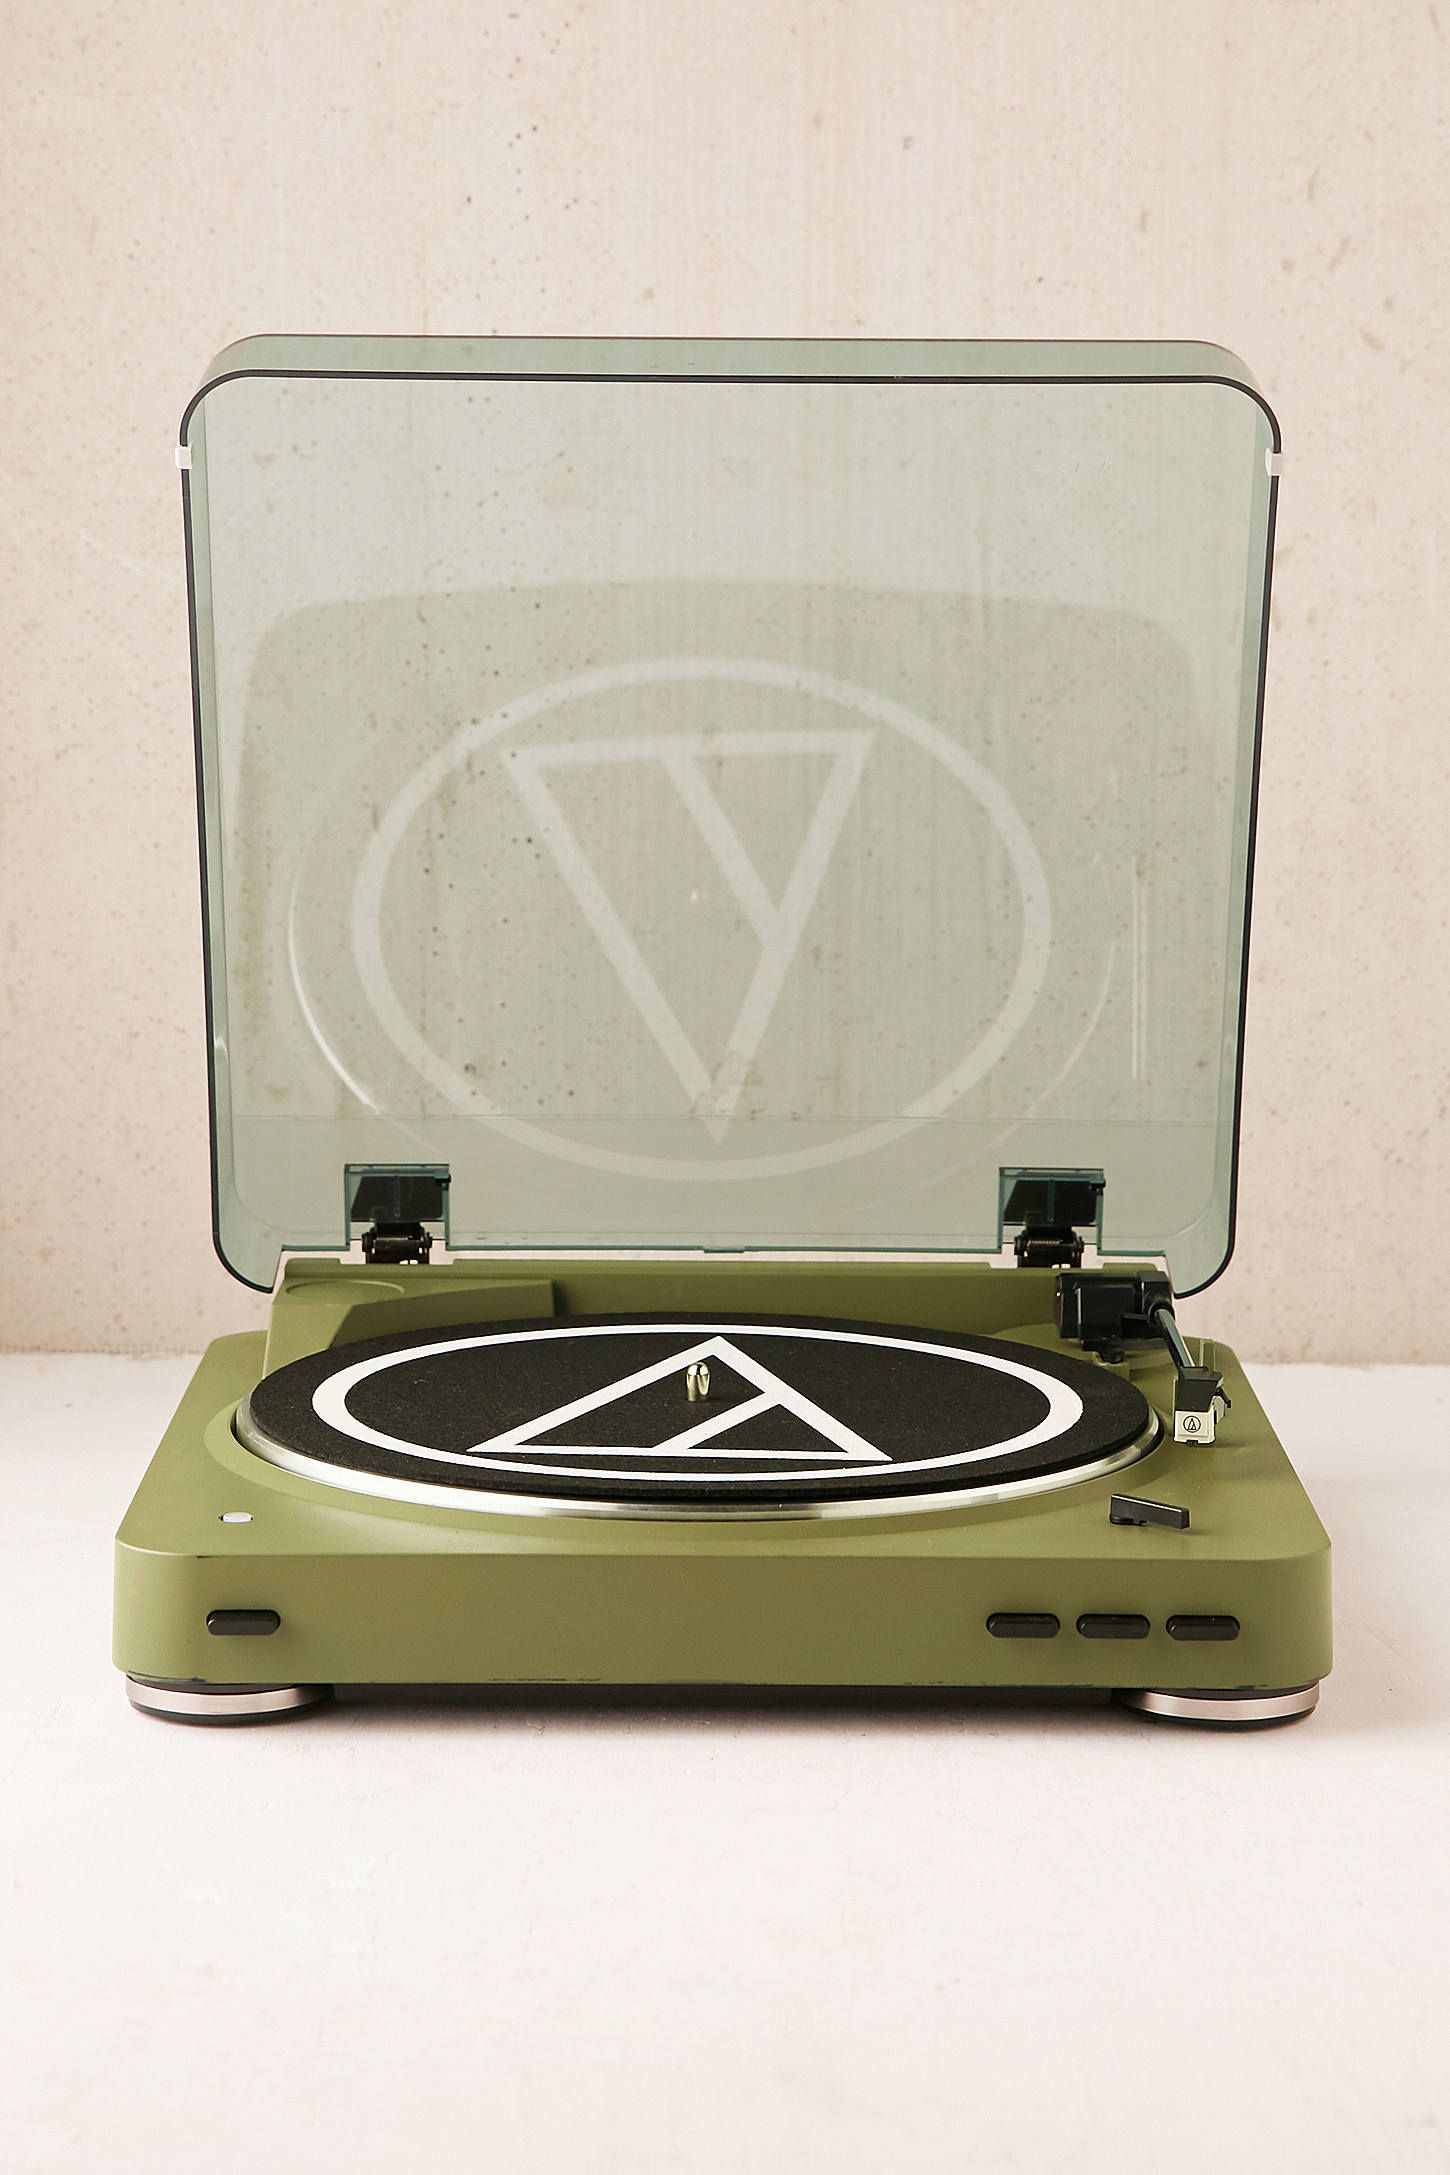 Audio Technica X Uo Olive At Lp60 Bluetooth Record Player Bluetooth Record Player Record Player Vinyl Record Player